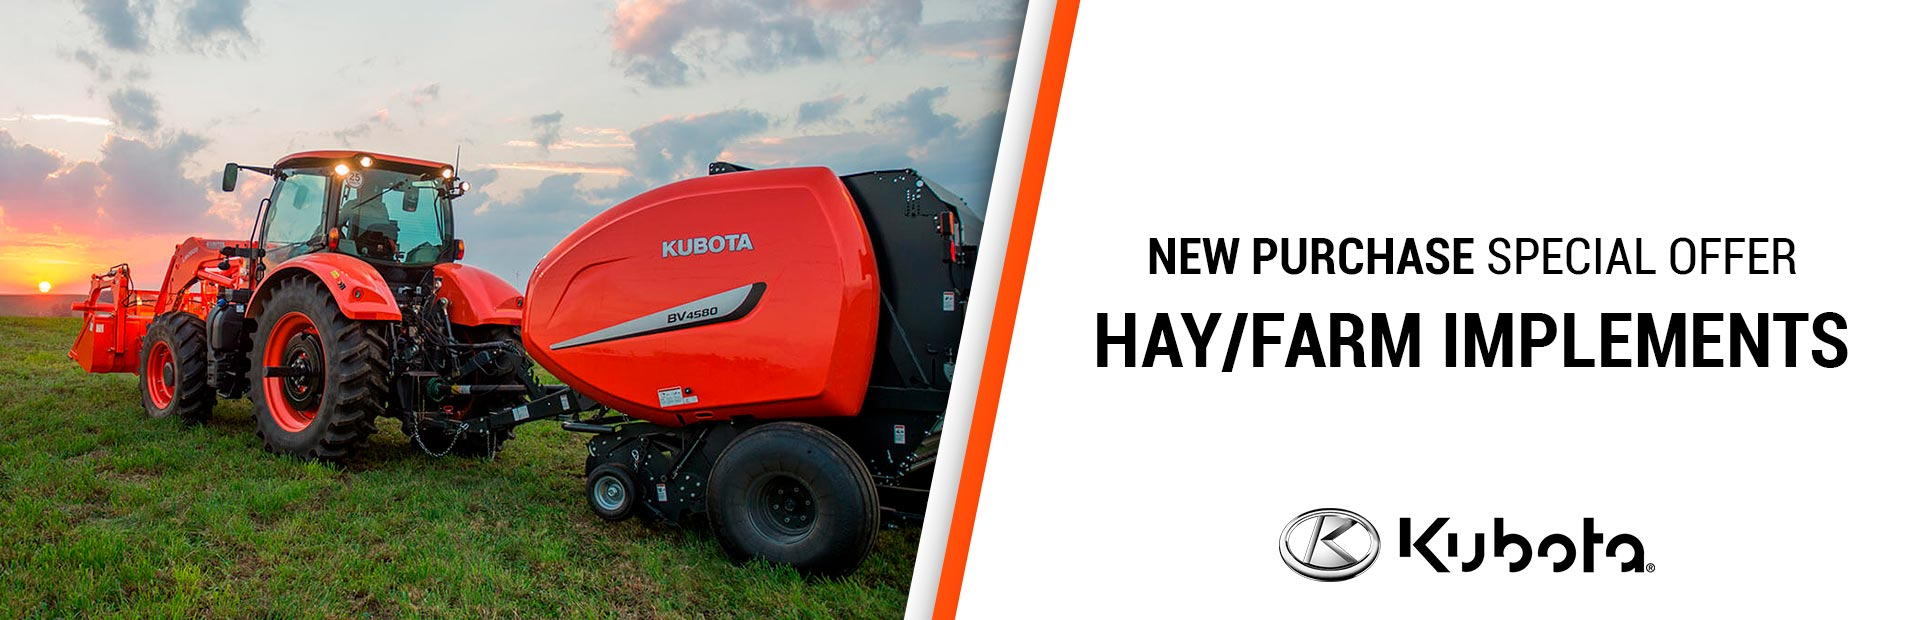 New Purchase Special Offers - Hay/Farm Implements